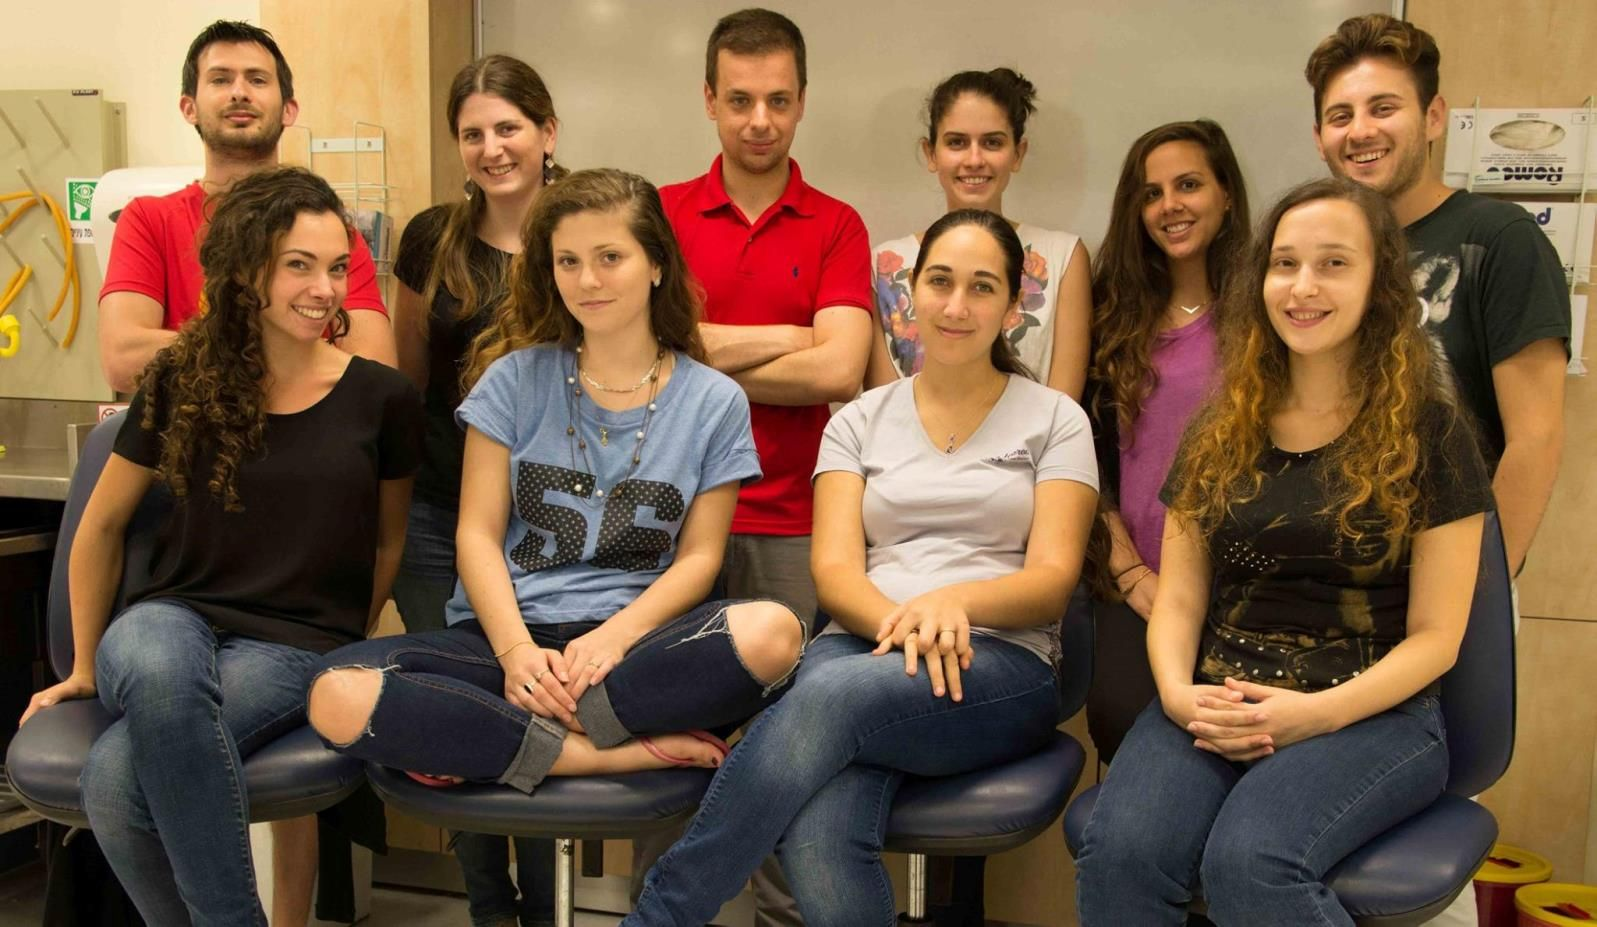 Technion iGEM 2015 team with Alexey Tomsov in center top row. Photo: courtesy